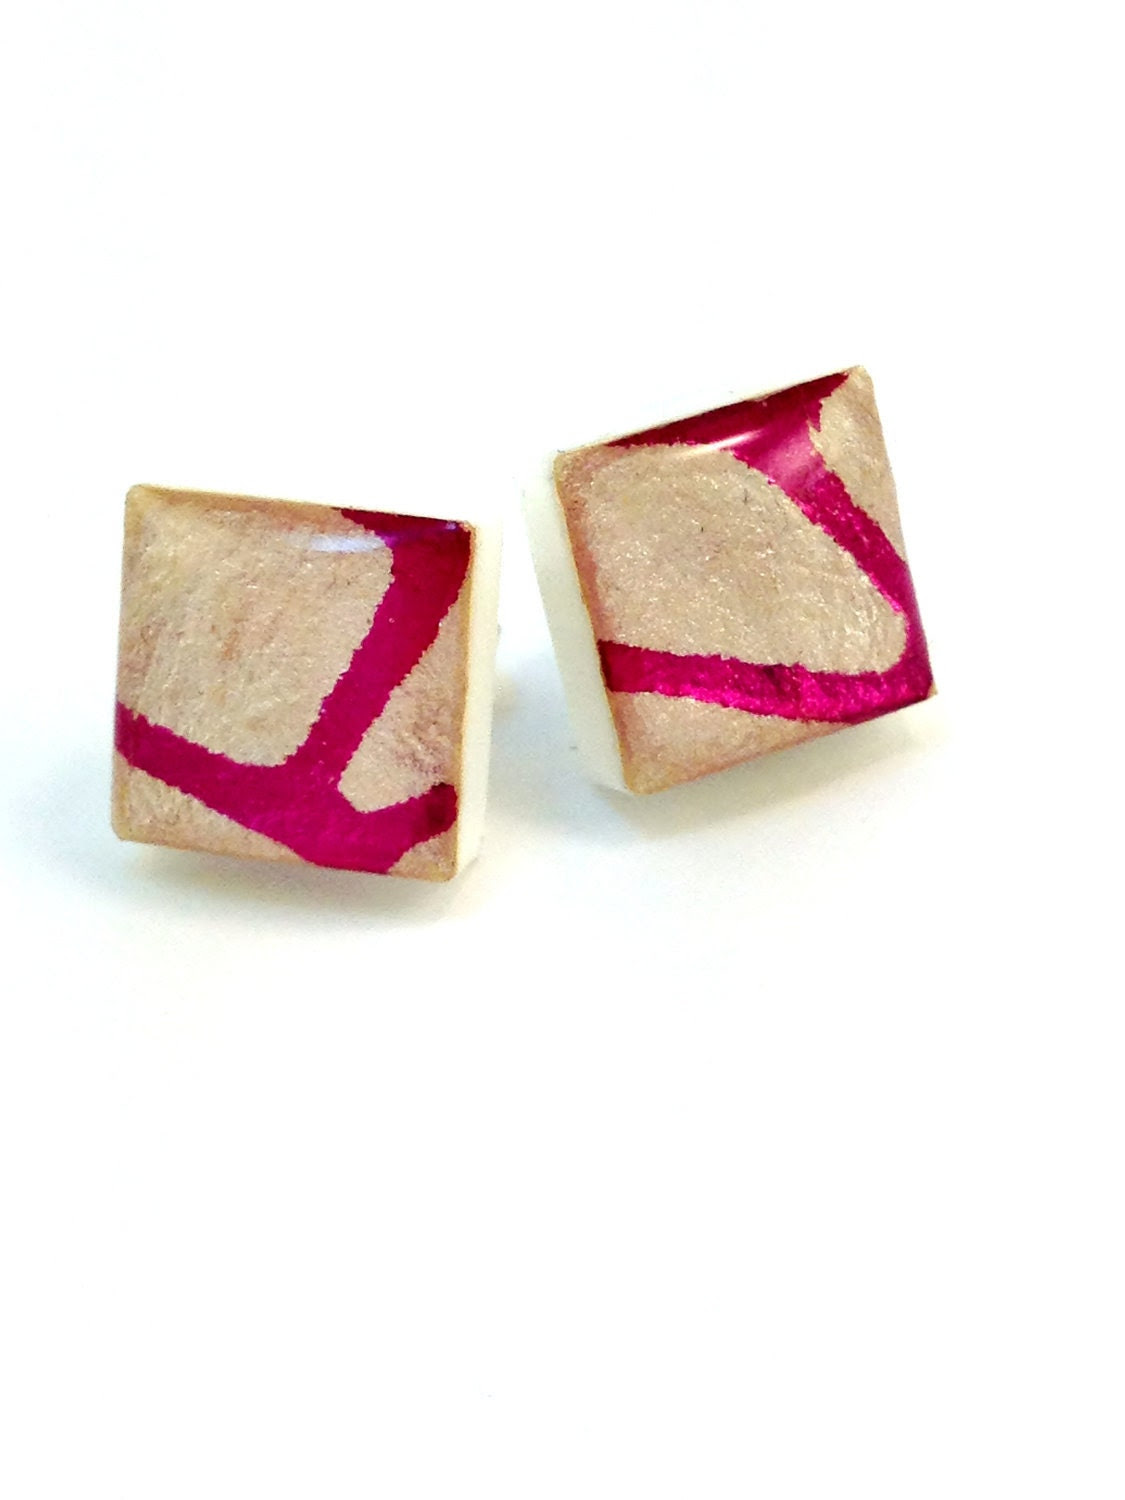 Resin Stud Earrings Square Ivory Pink Foil Embossed Acrylic